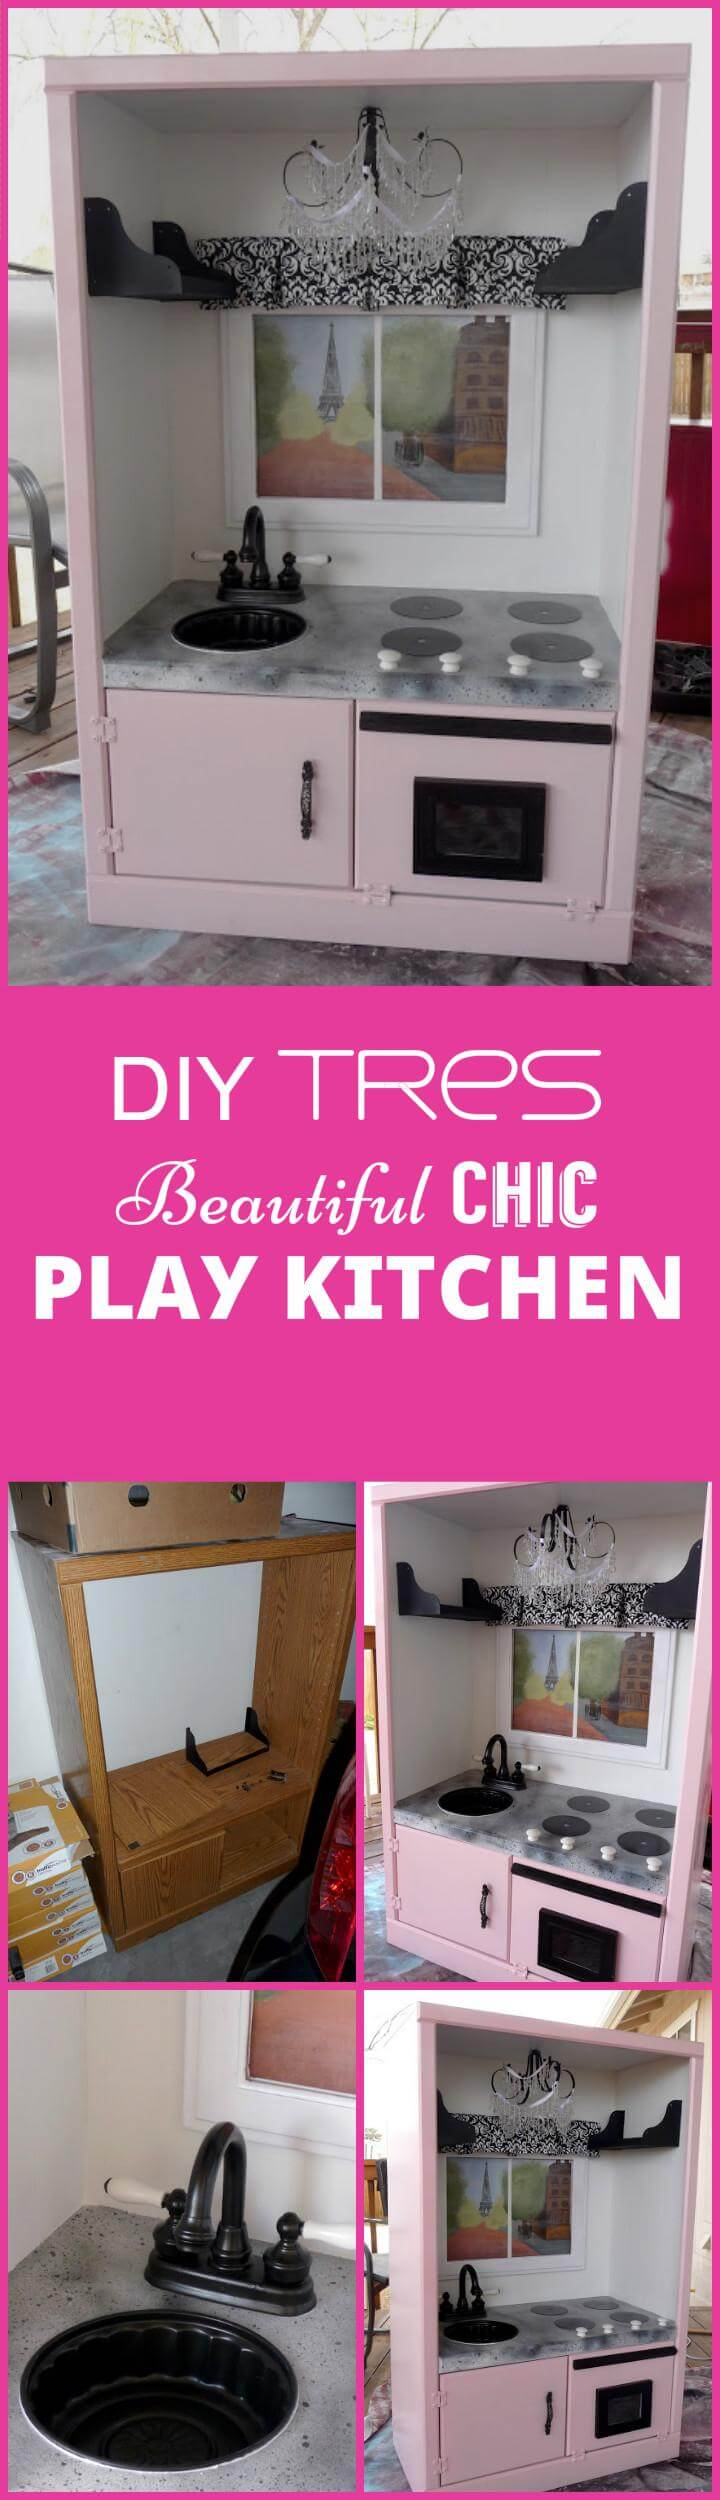 easy yet beautiful tres beautiful chic play kitchen